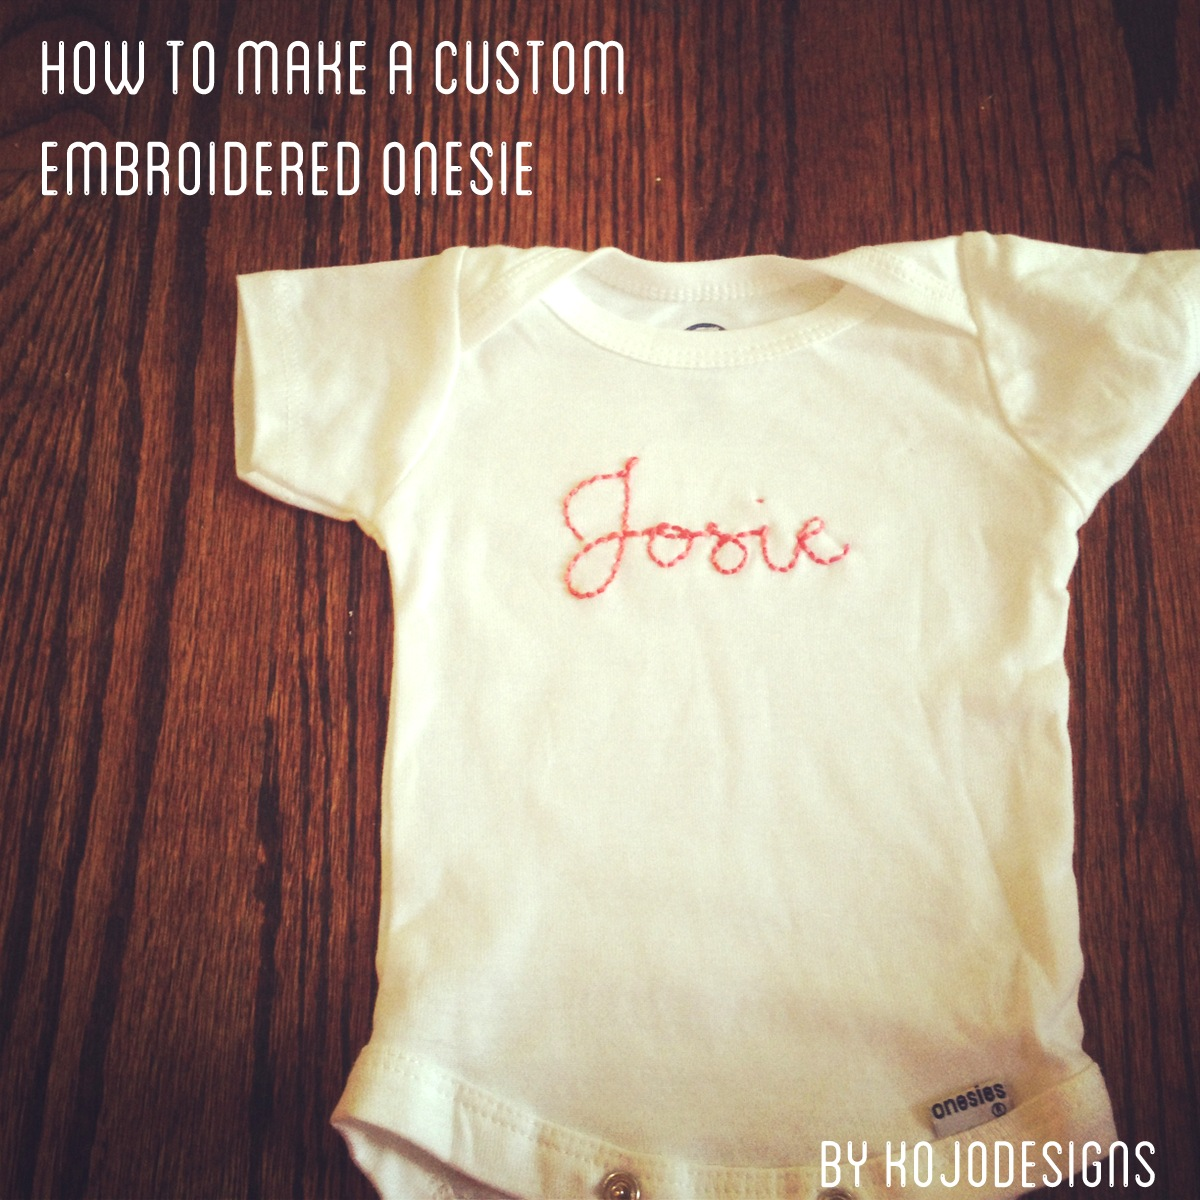 how to make a custom embroidered onesie by kojodesigns